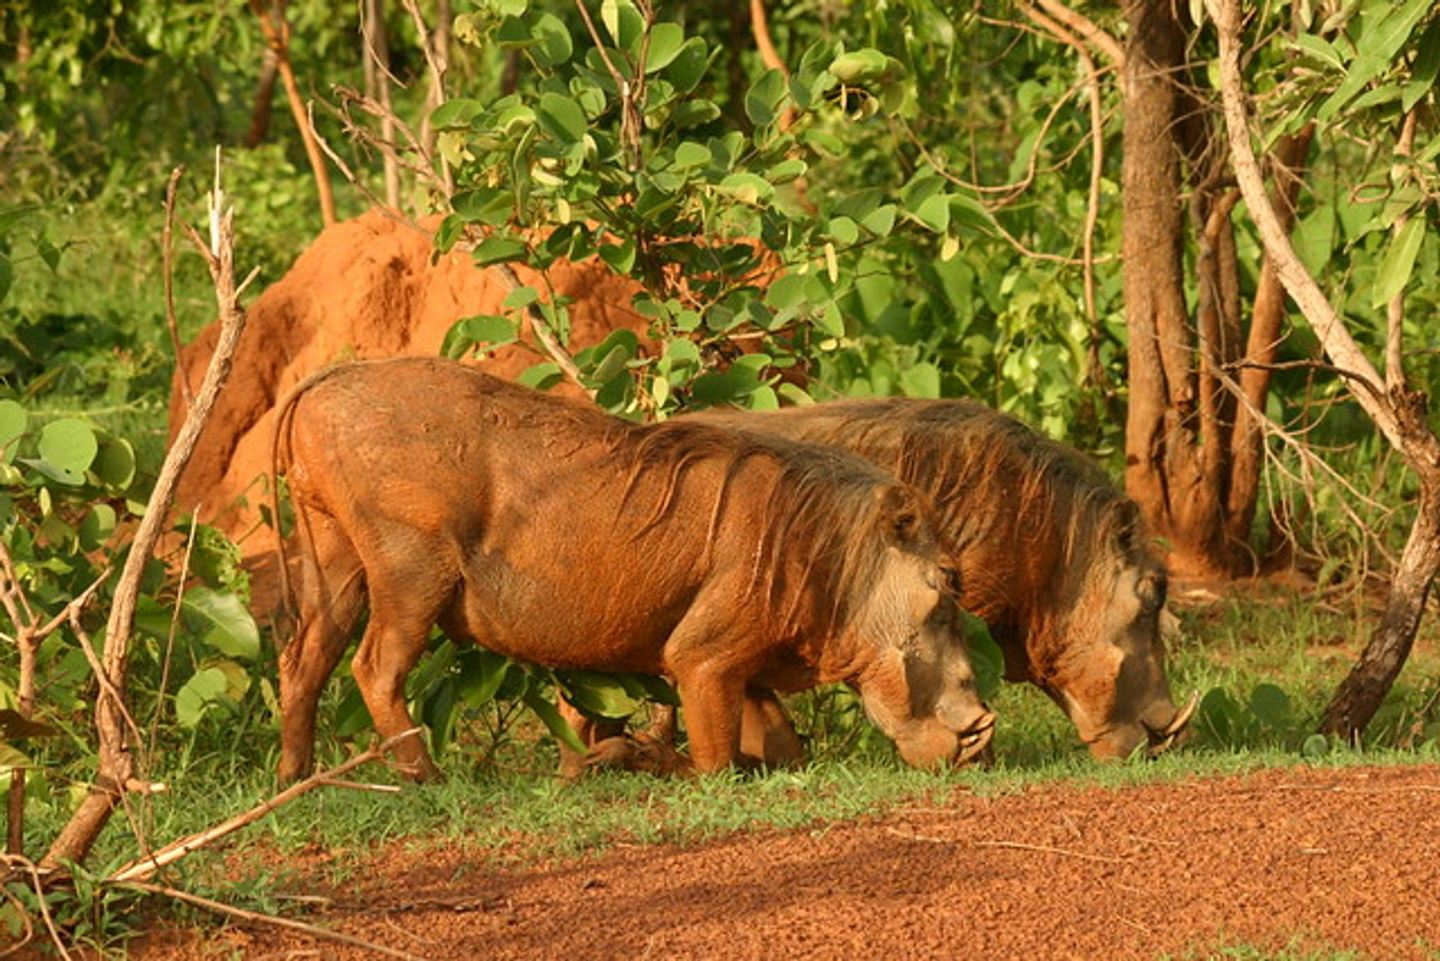 3 DAY TRIP TO MOLE NATIONAL PARK